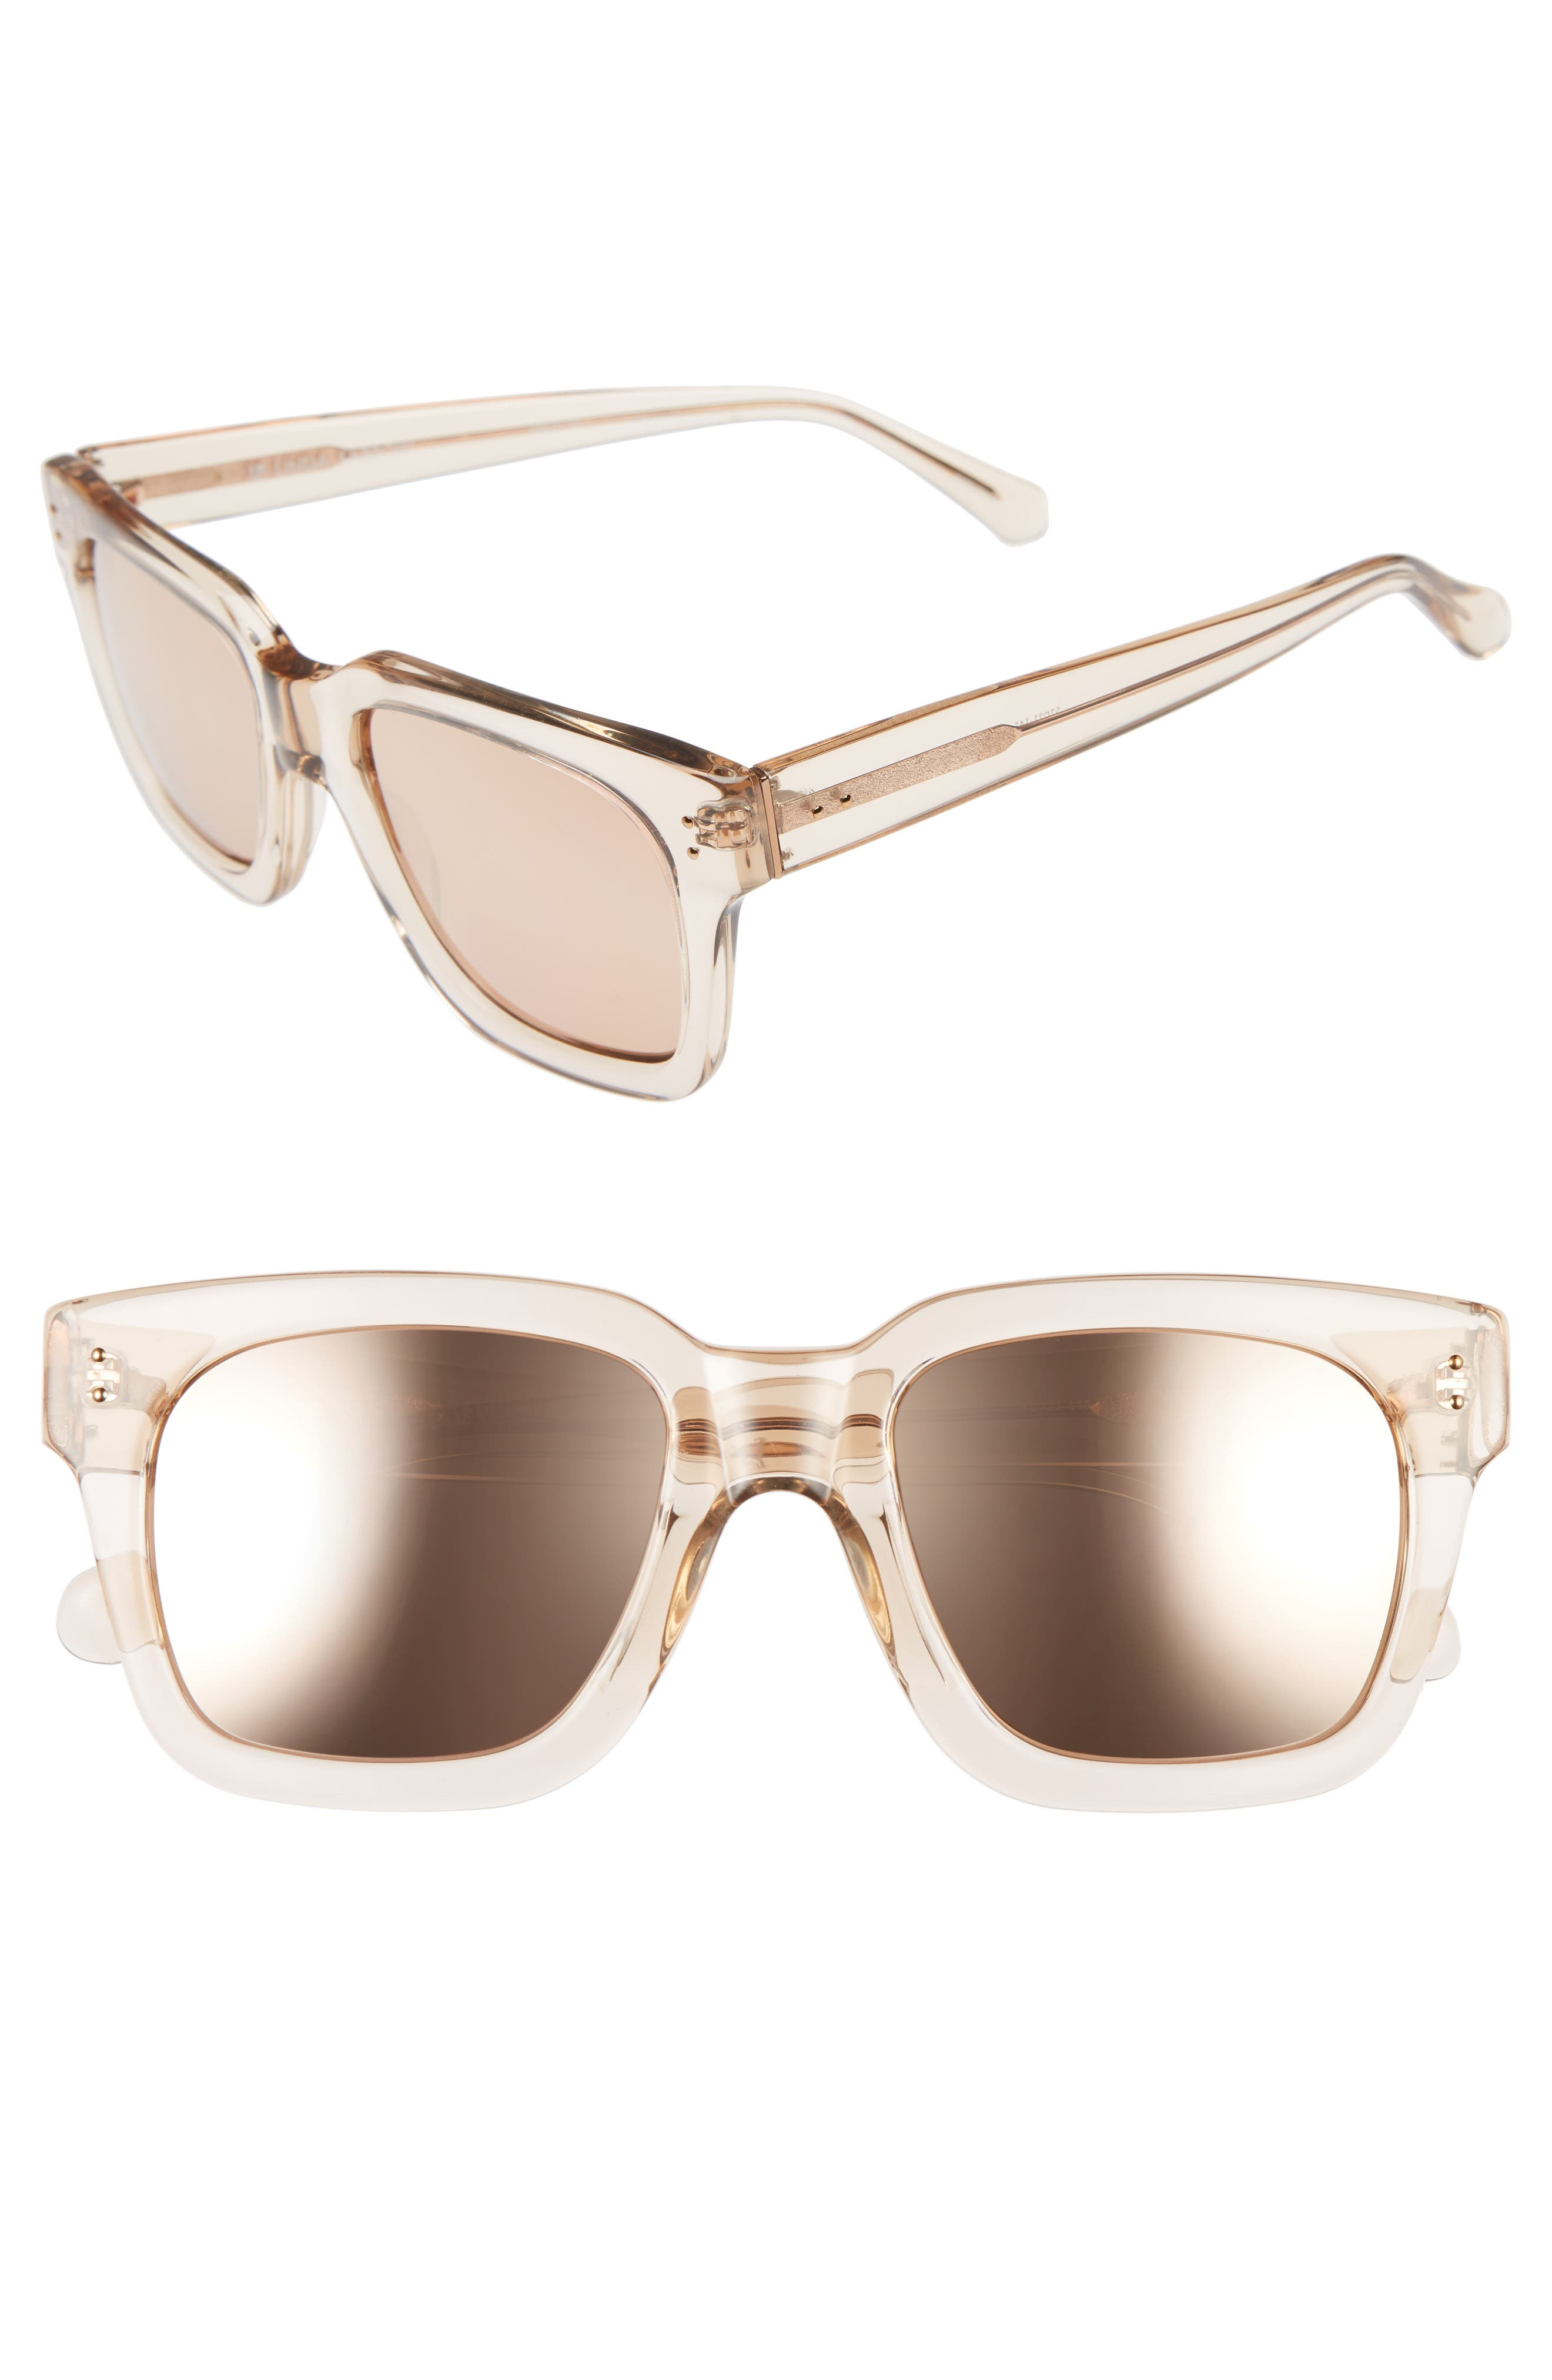 Linda Farrow 50mm Sunglasses